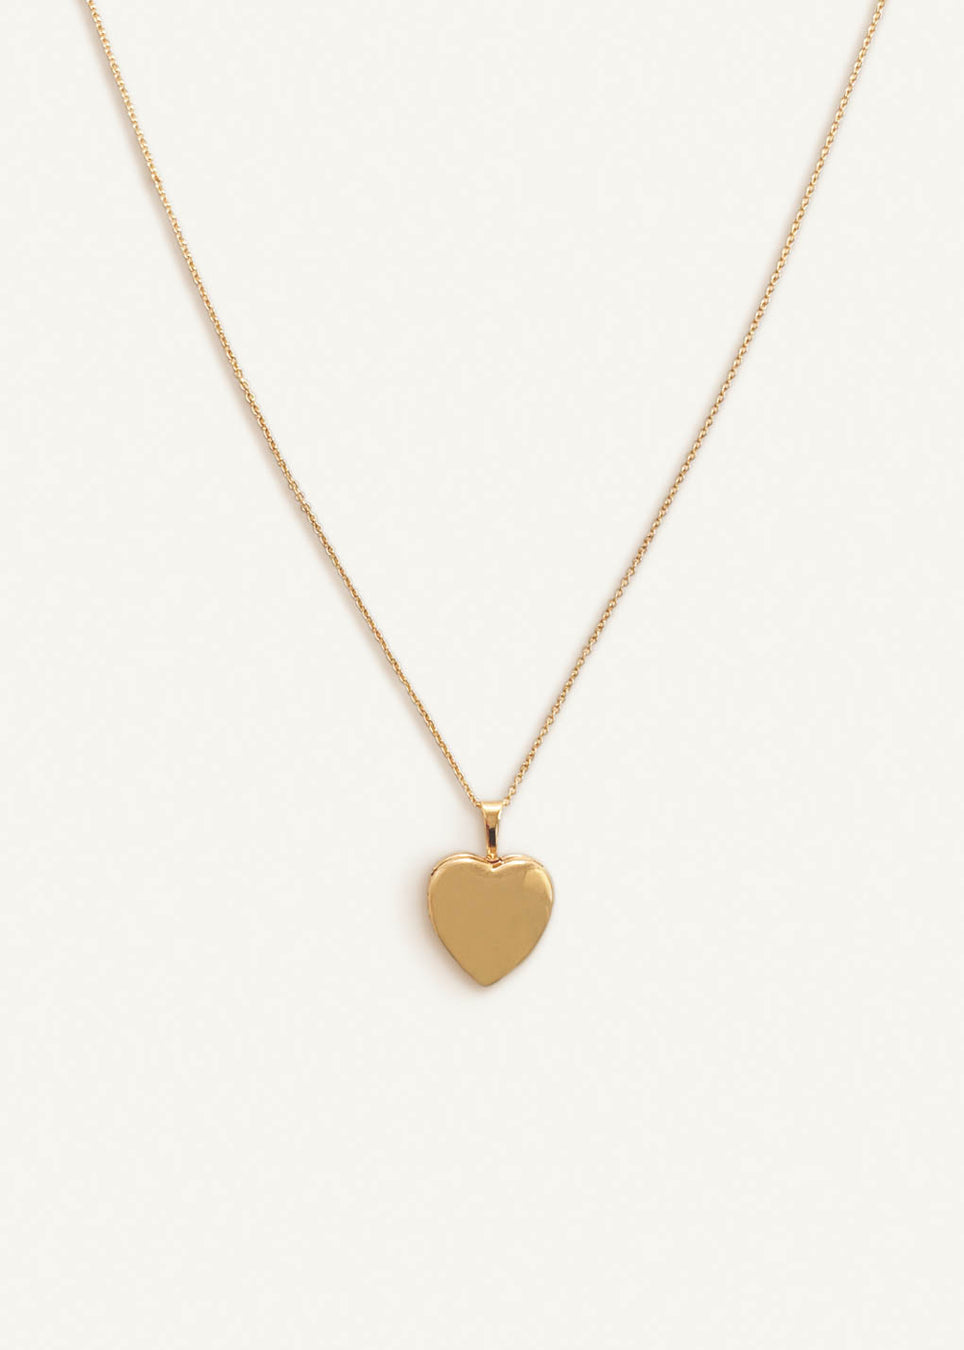 Maison Heart Locket Pendant